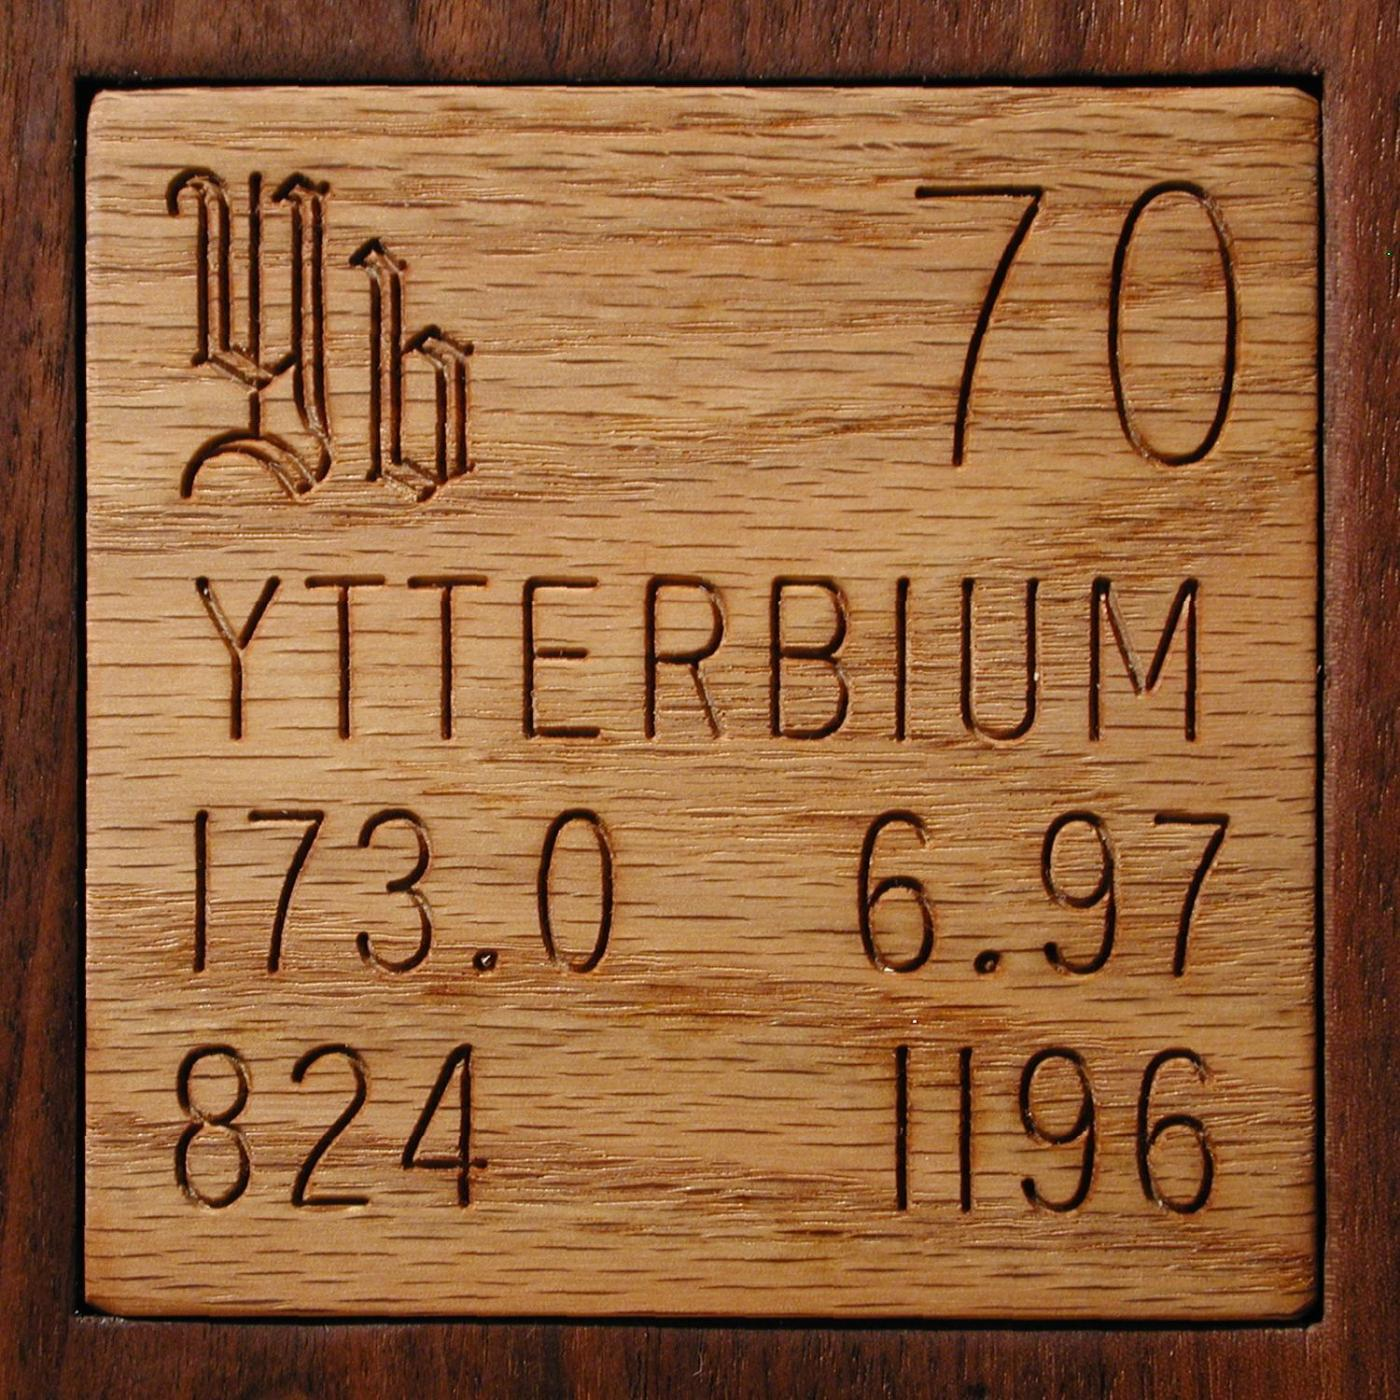 Technical Data For The Element Ytterbium In The Periodic Table